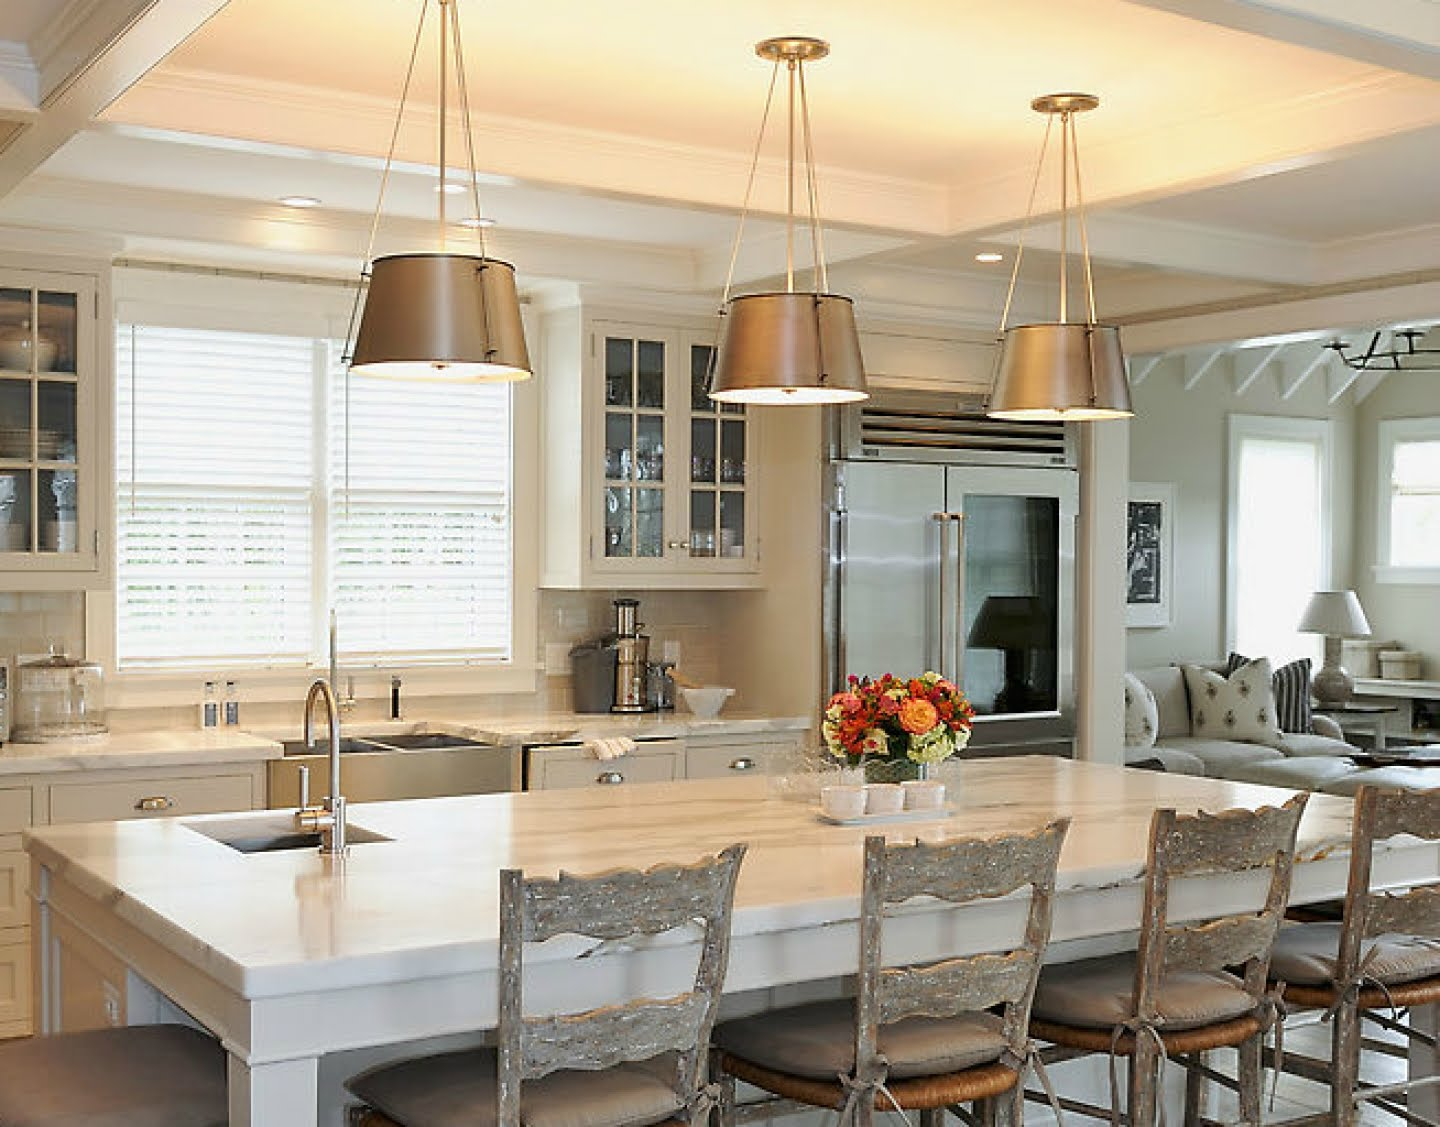 Cafe Themed Kitchen Decor Ideas Amusing Trends Including